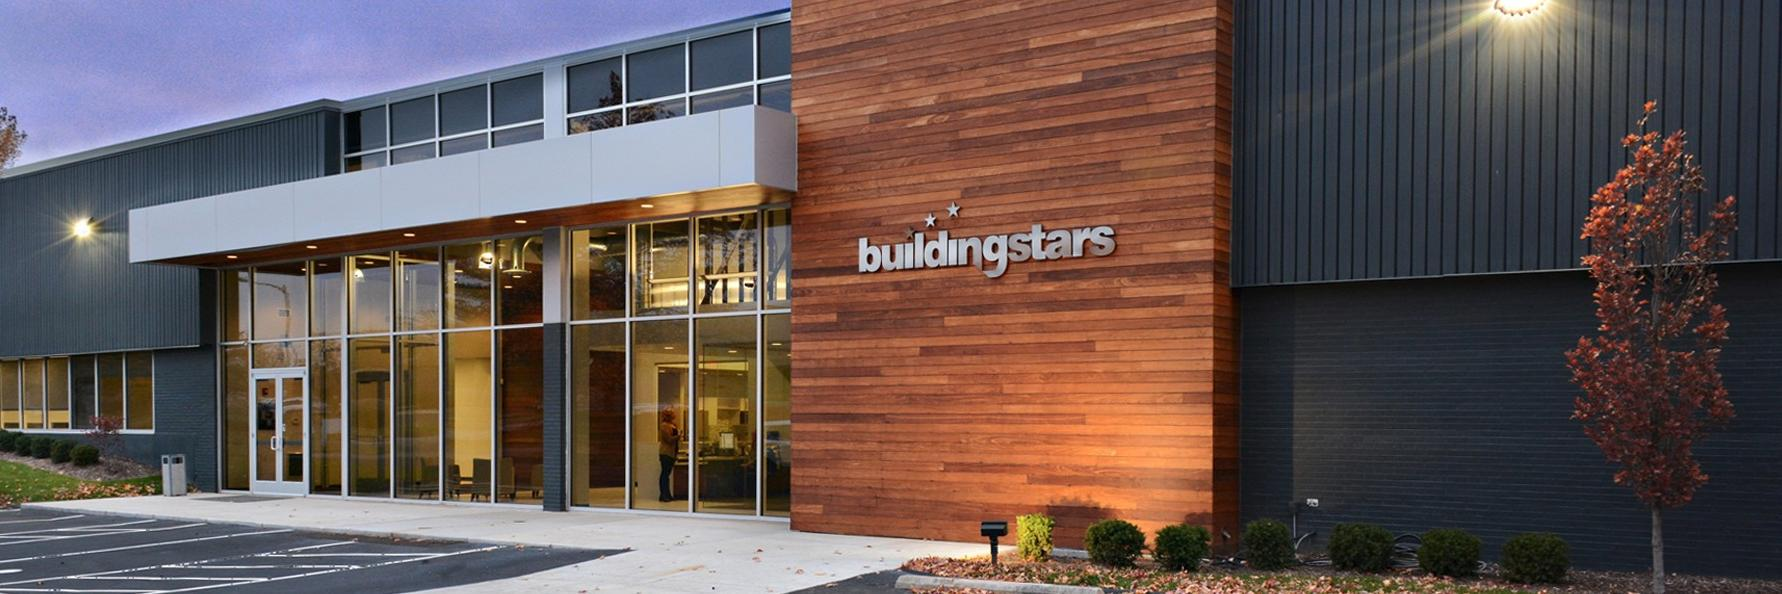 Buildingstars Int'l. Inc.